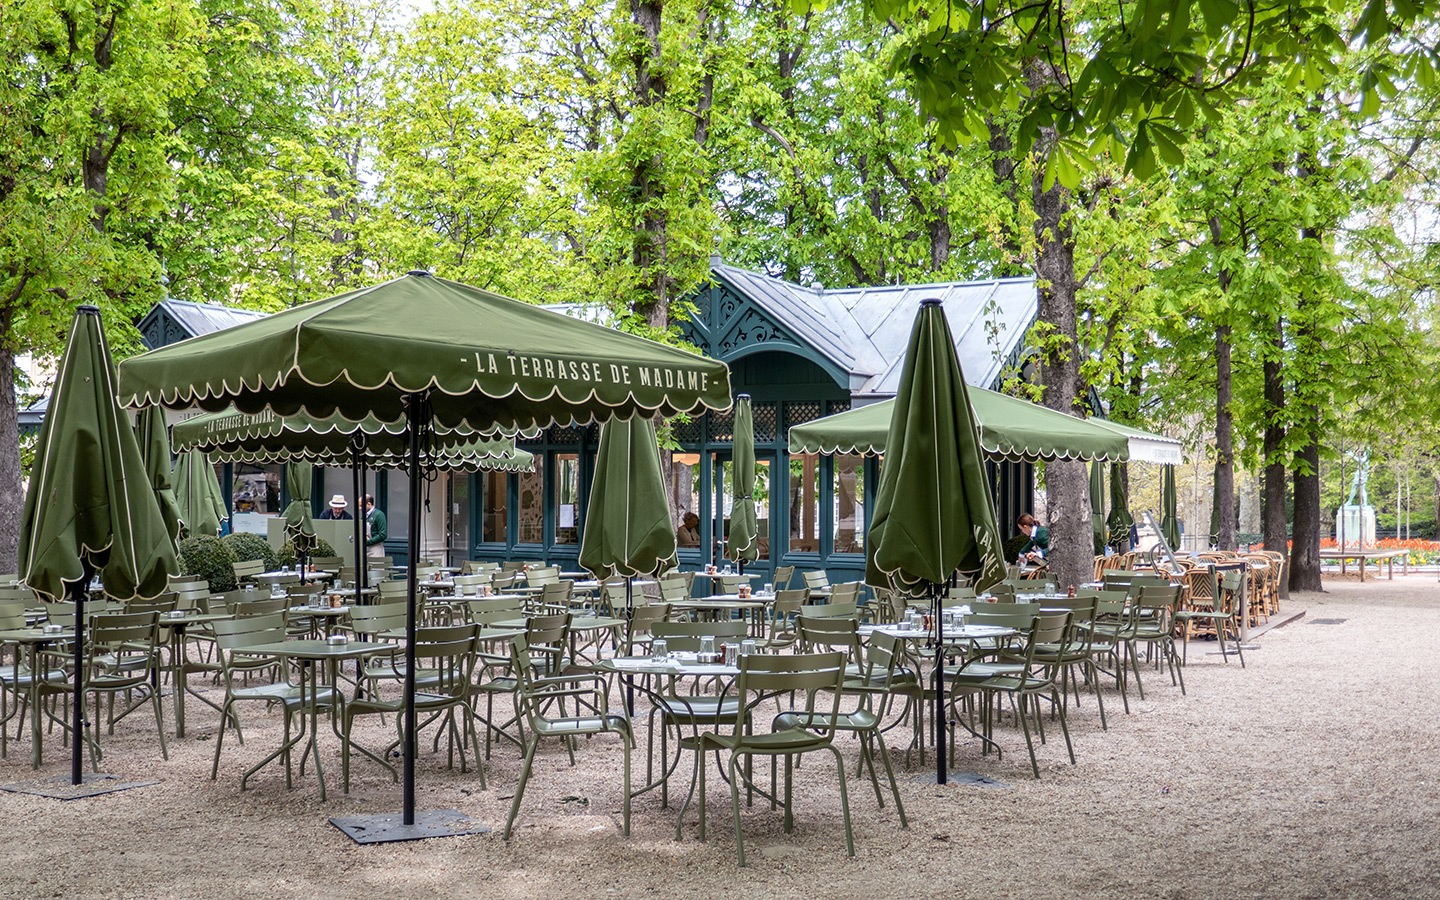 Cafe terrace in Paris Luxebourg Gardens